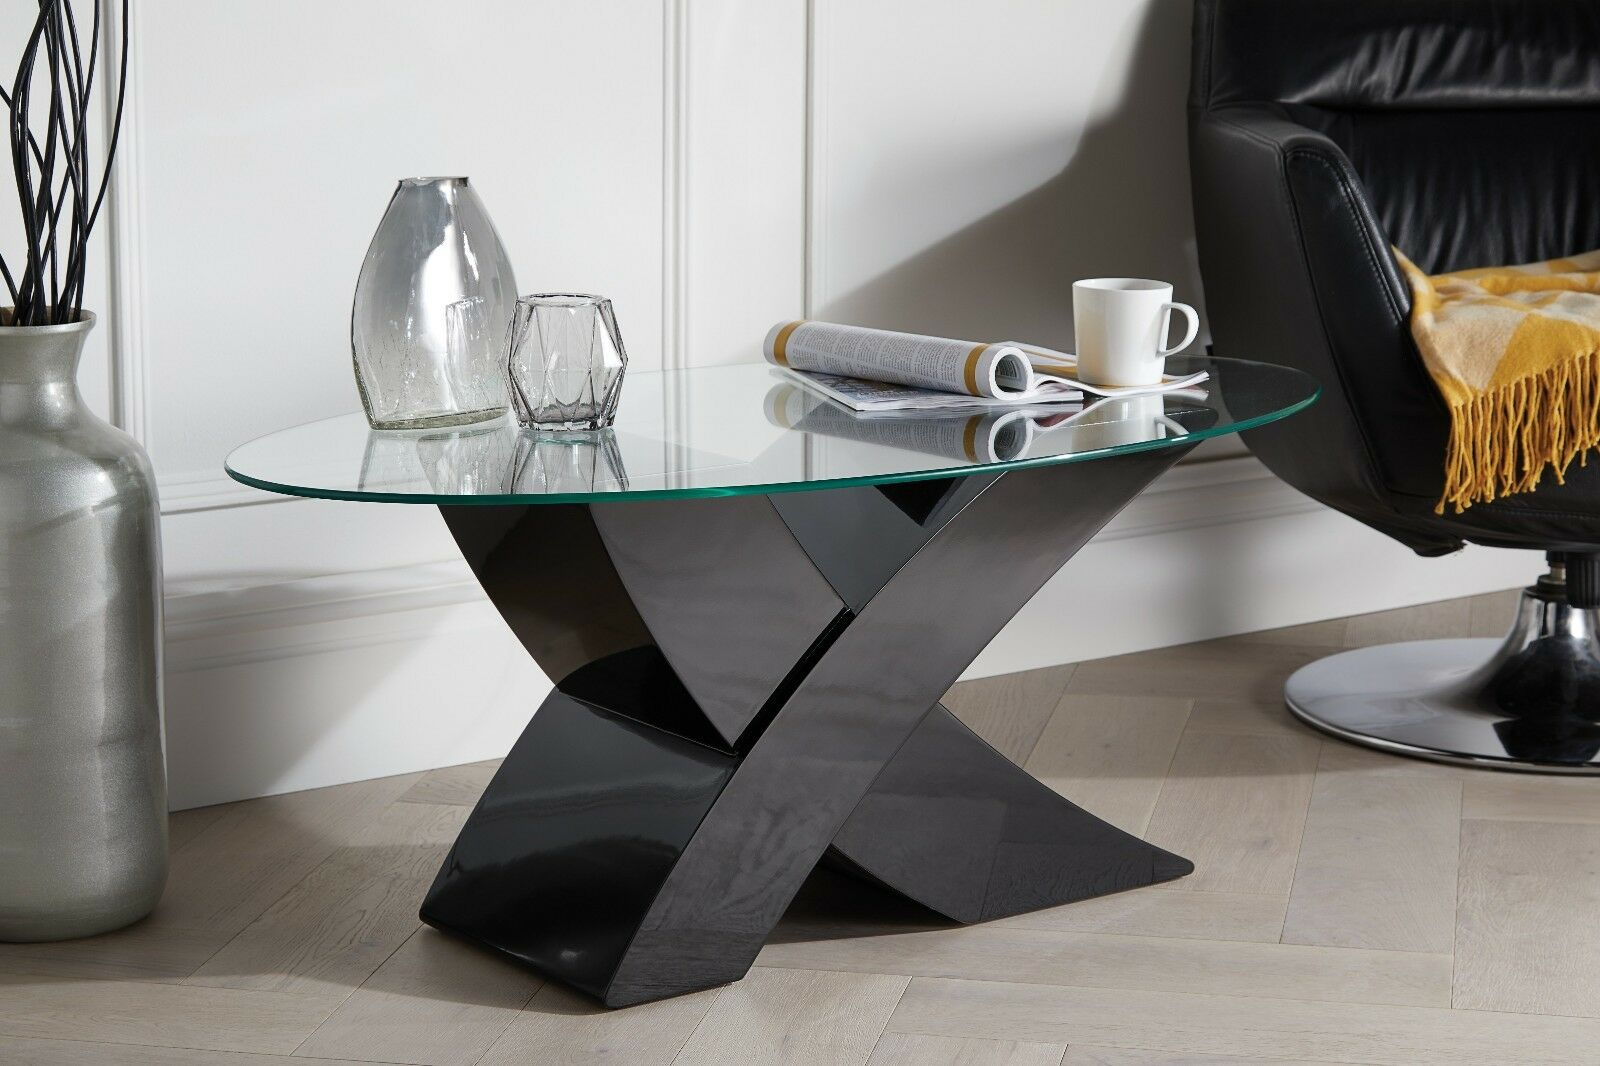 Details about milano designer oval x black high gloss glass coffee table modern furniture